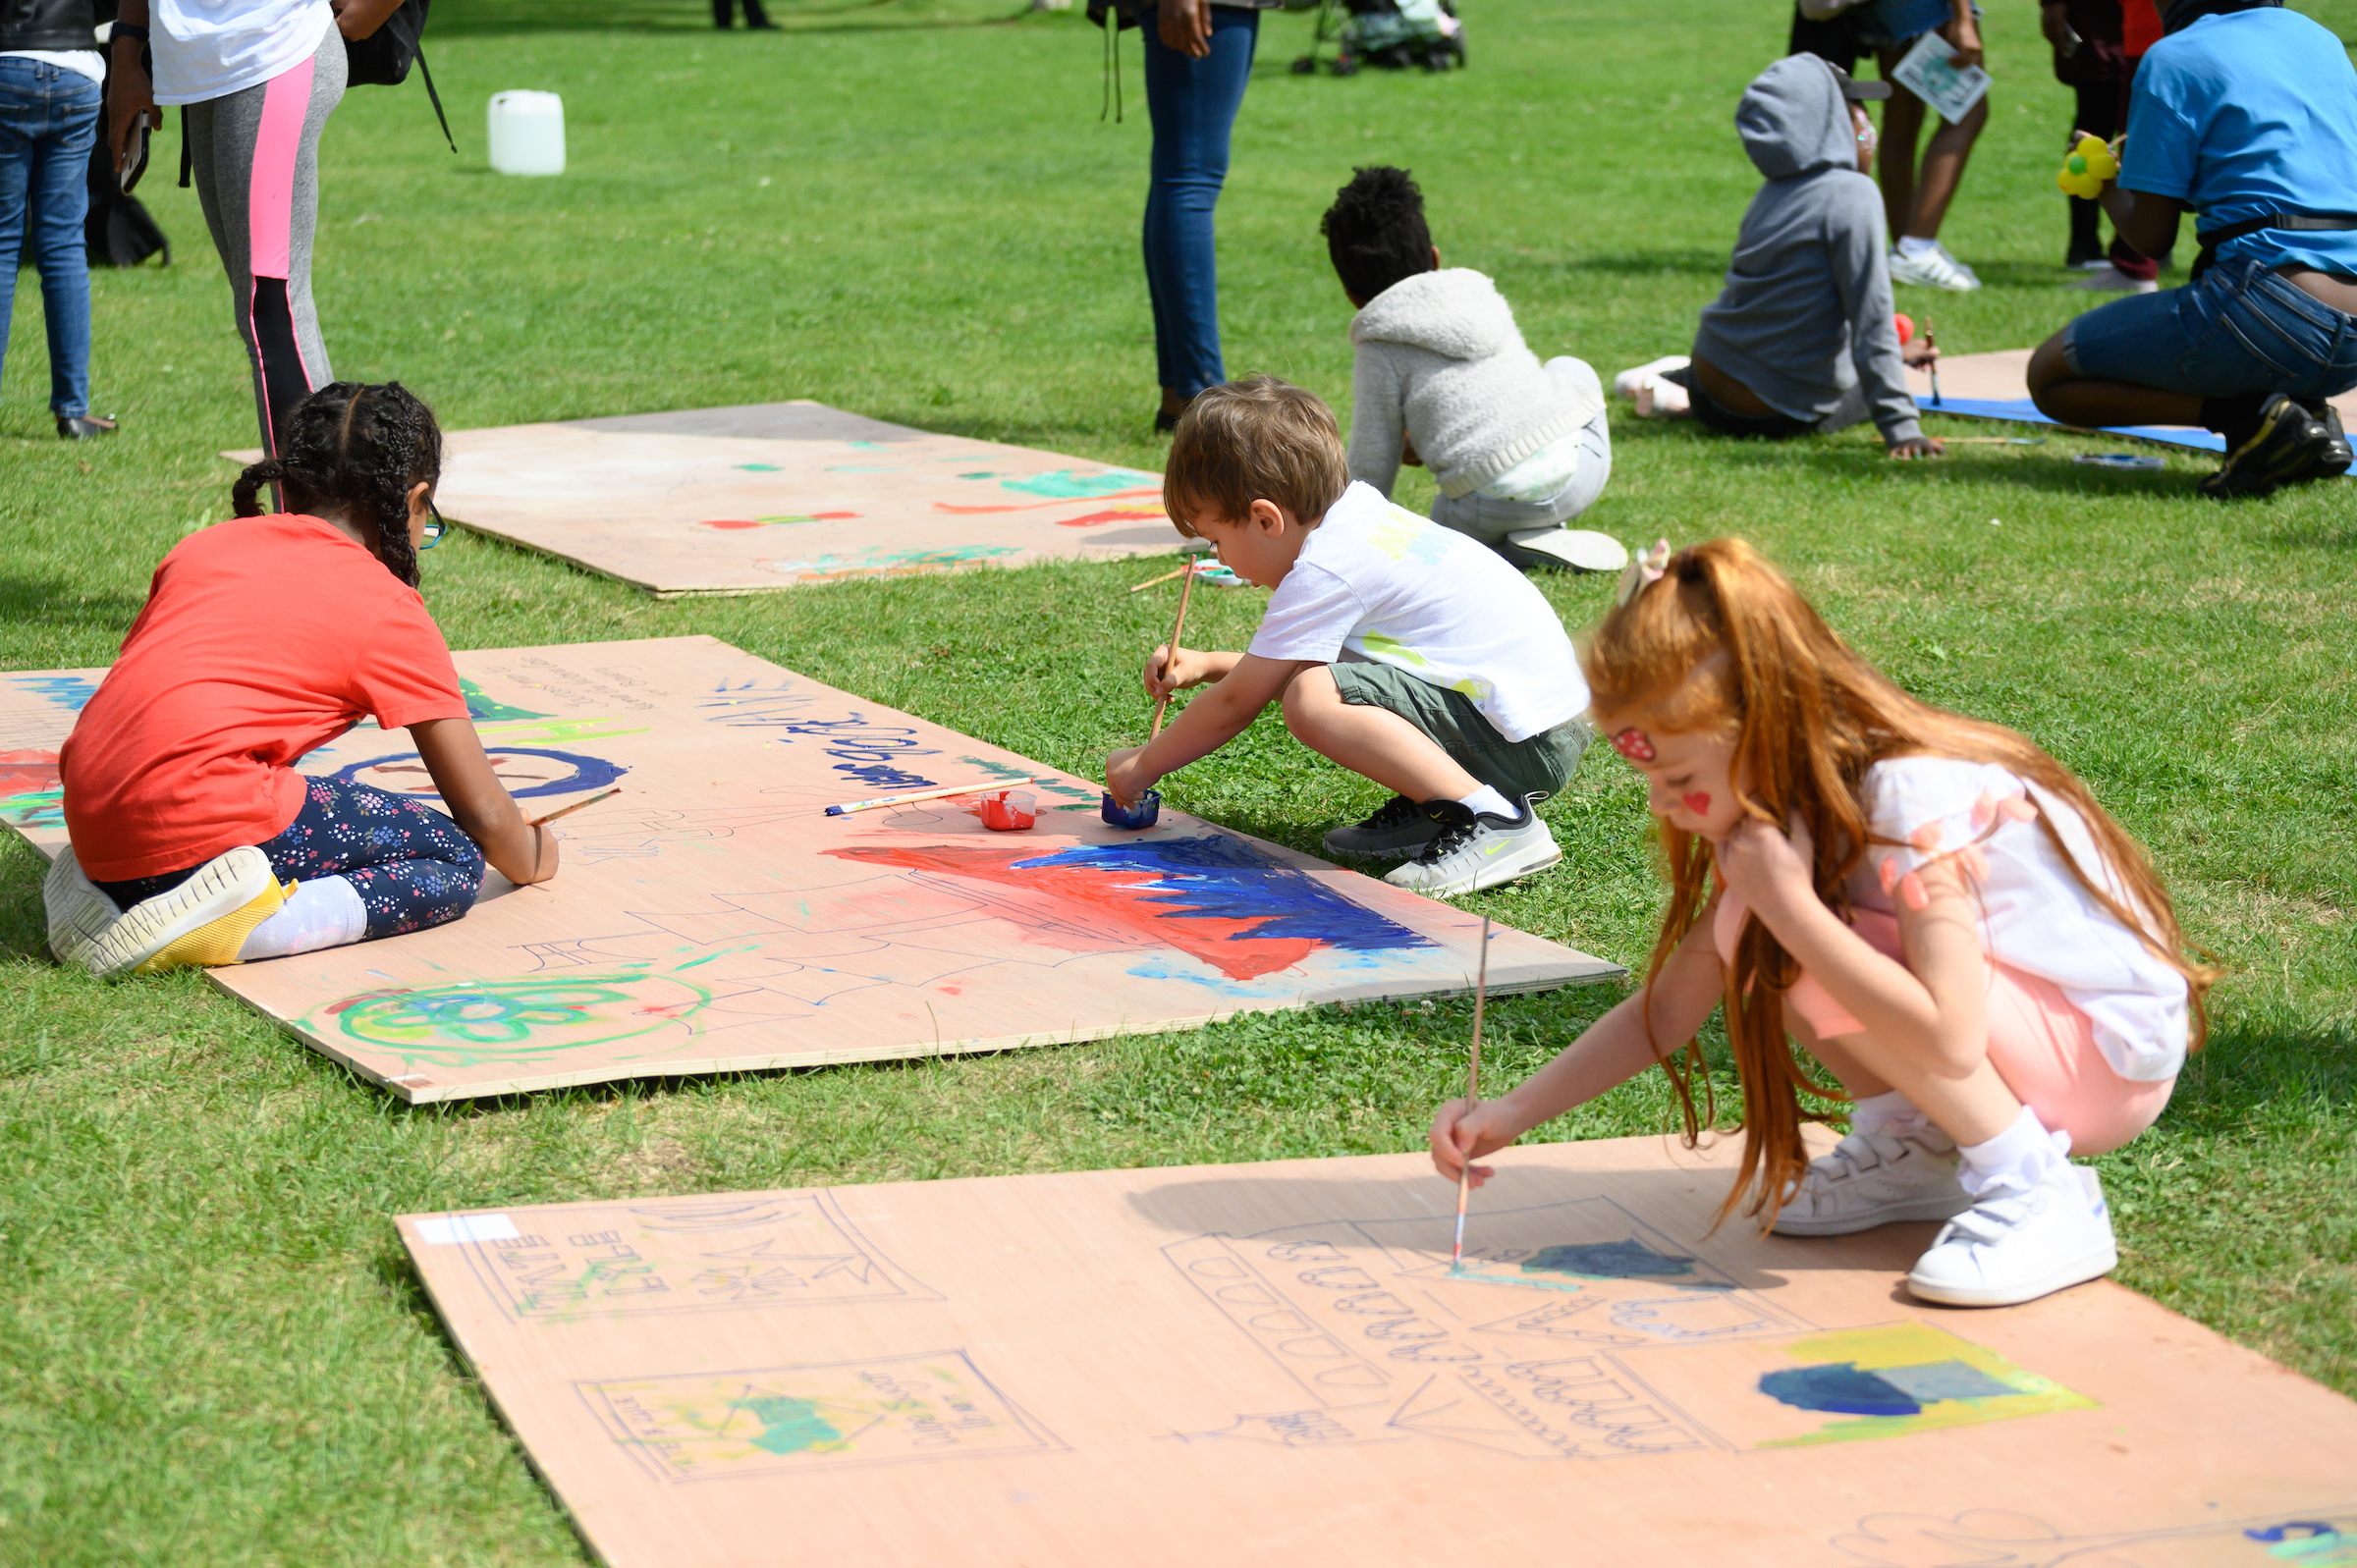 Children painting on boards